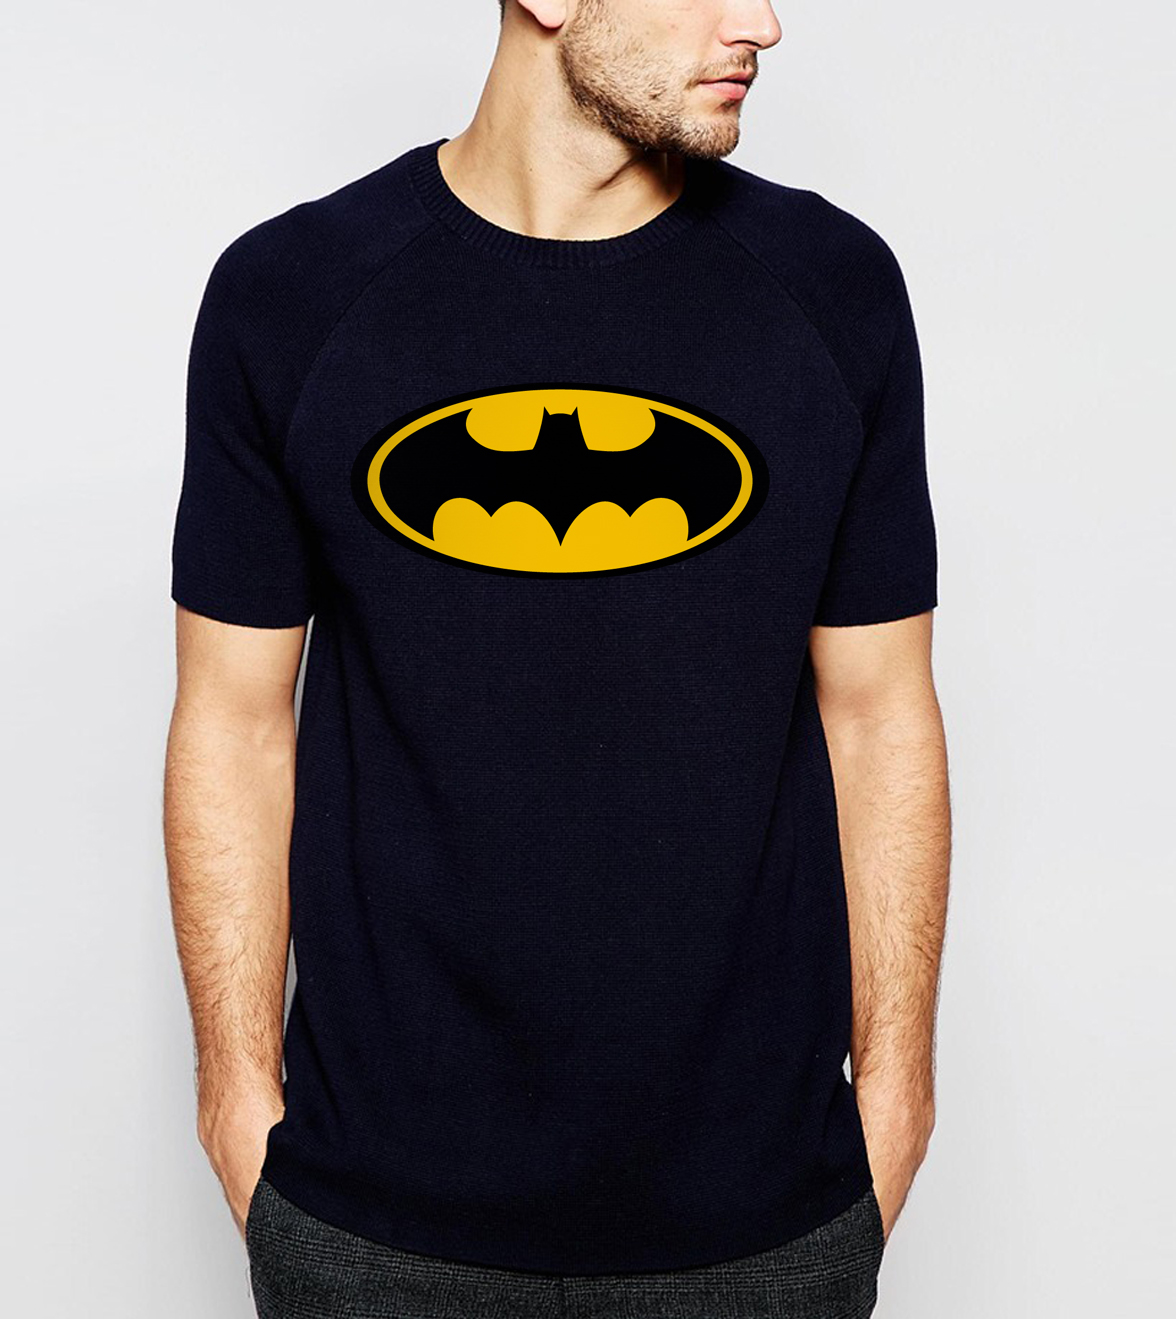 Batman T Shirt Cartoon Superhero Tshirt Men T Shirts Summer Short Sleeve T-Shirt Super Hero Cotton Black White Print Tops Tee